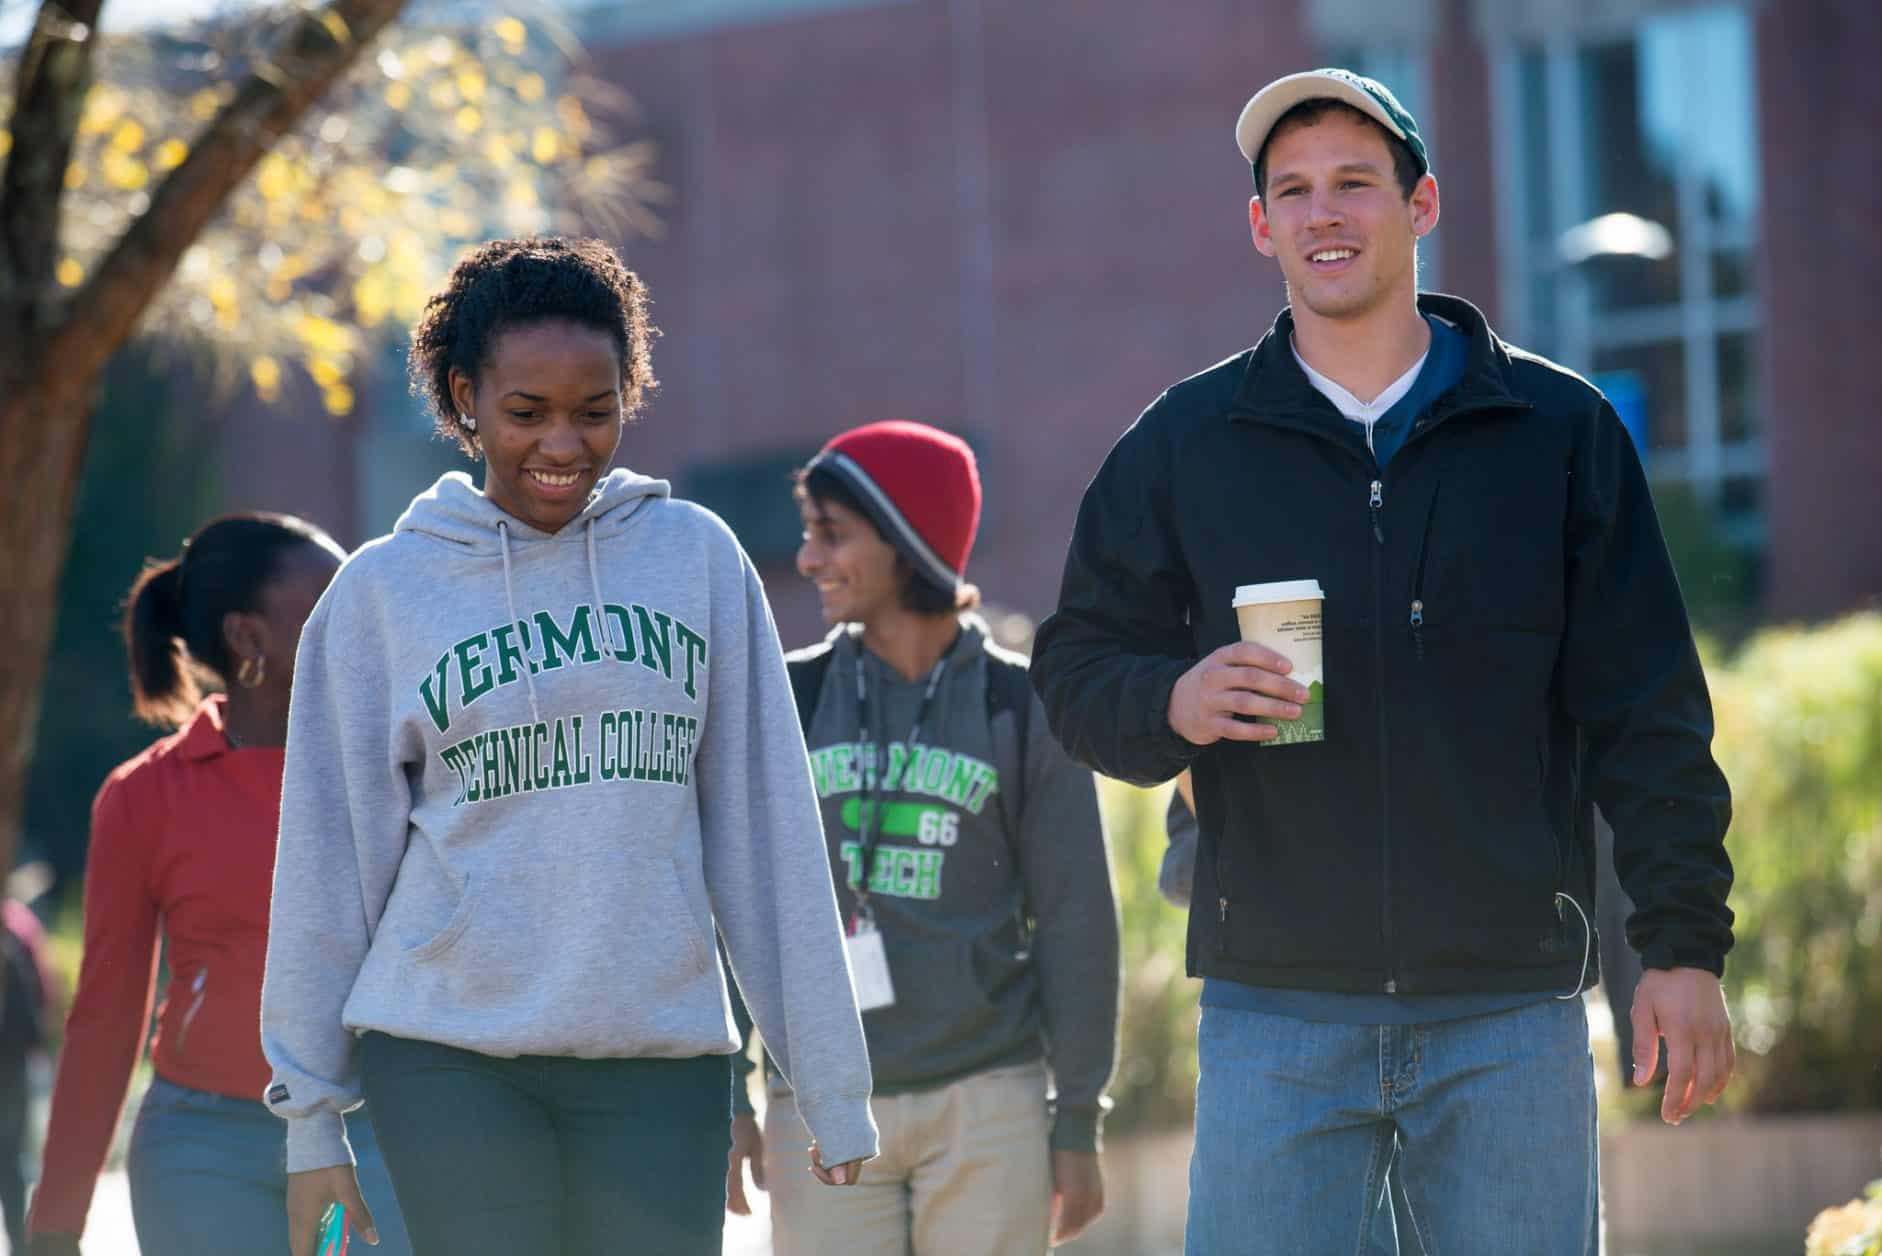 Female students, male students, diversity, walking, smiling, coffee, Randolph Center campus